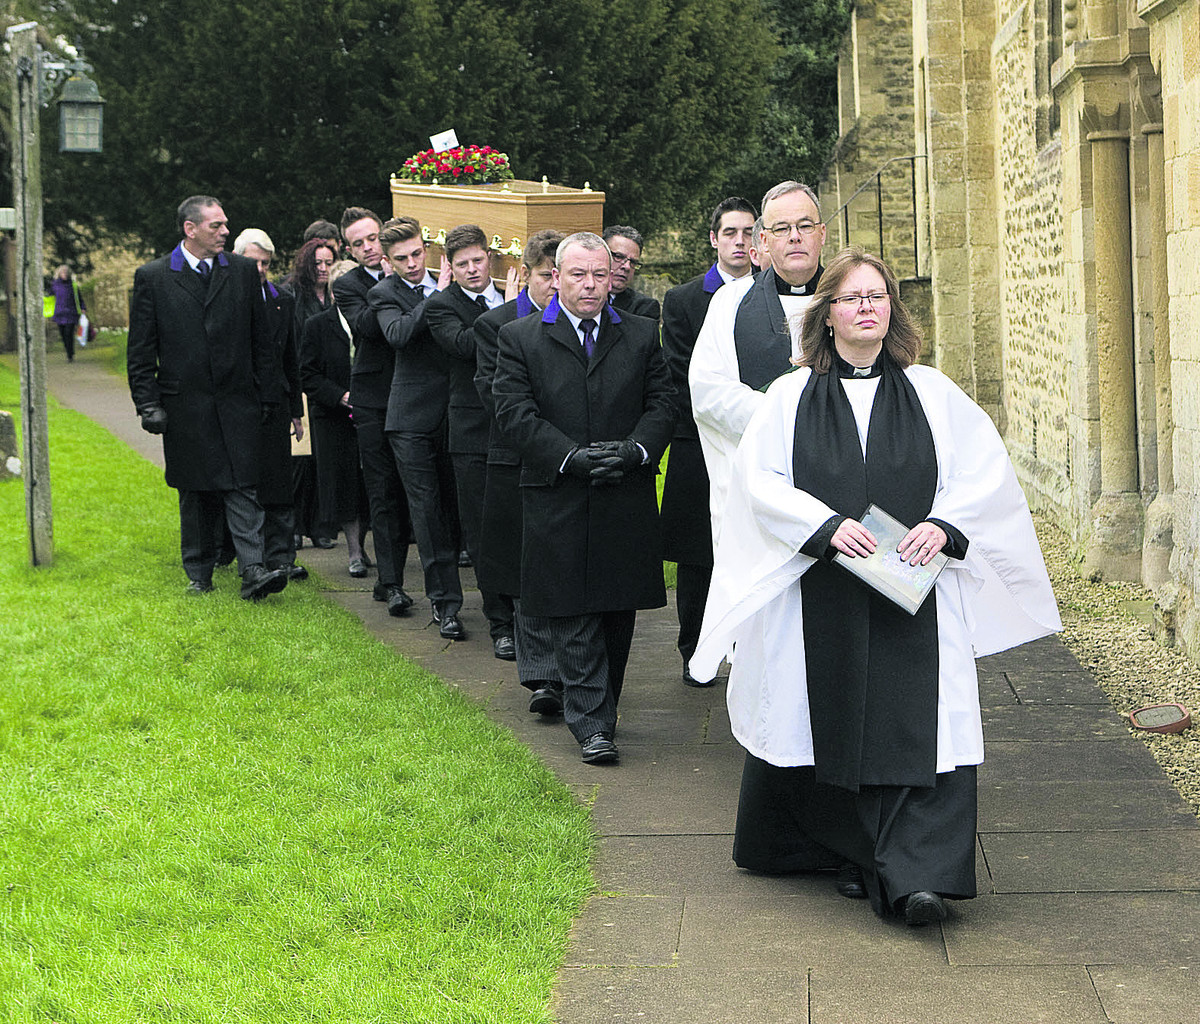 Tributes paid at former city Lord Mayor's funeral